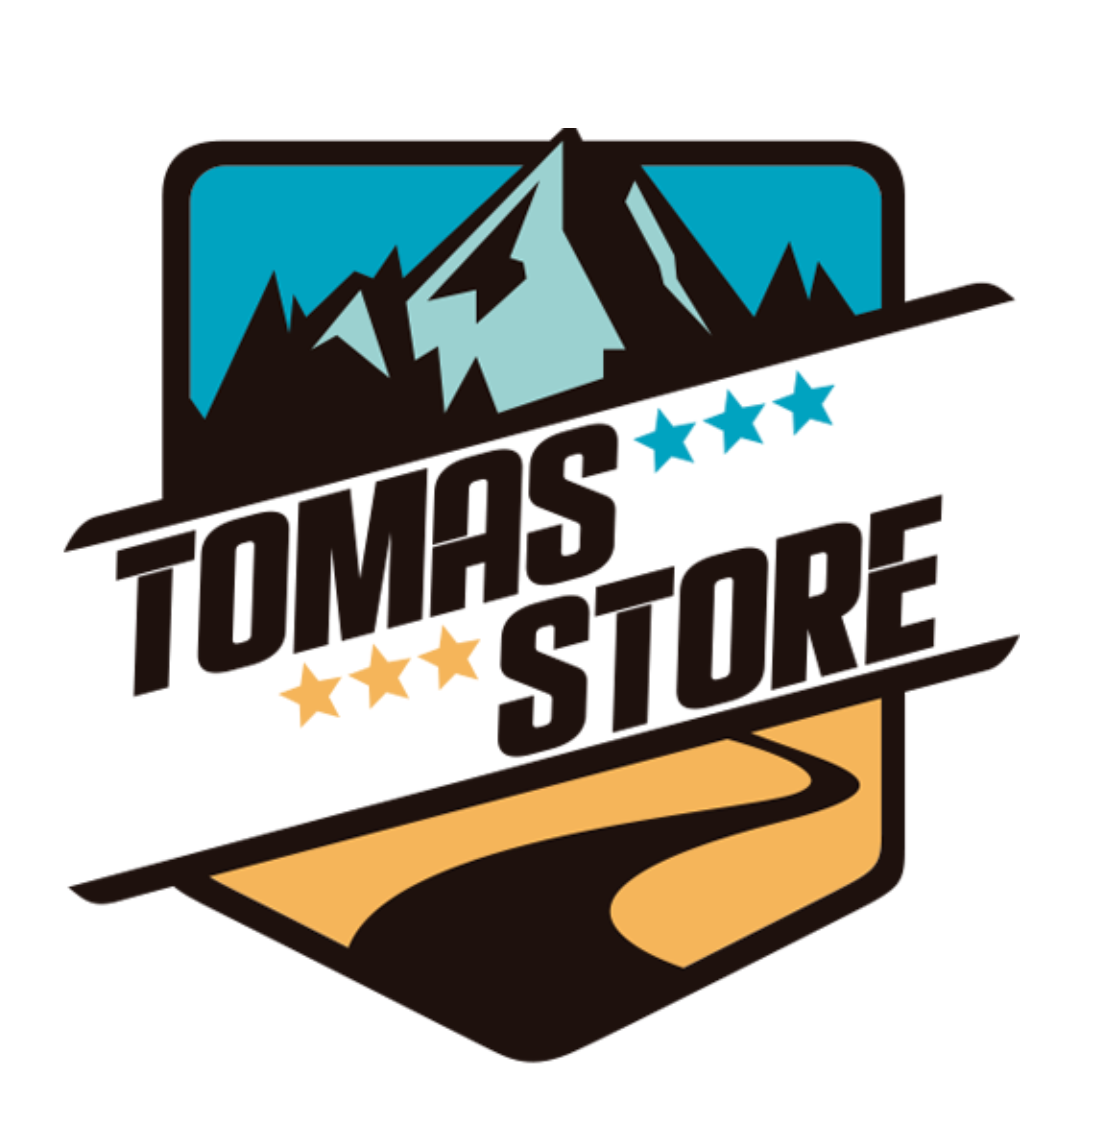 Tomasstore.cl